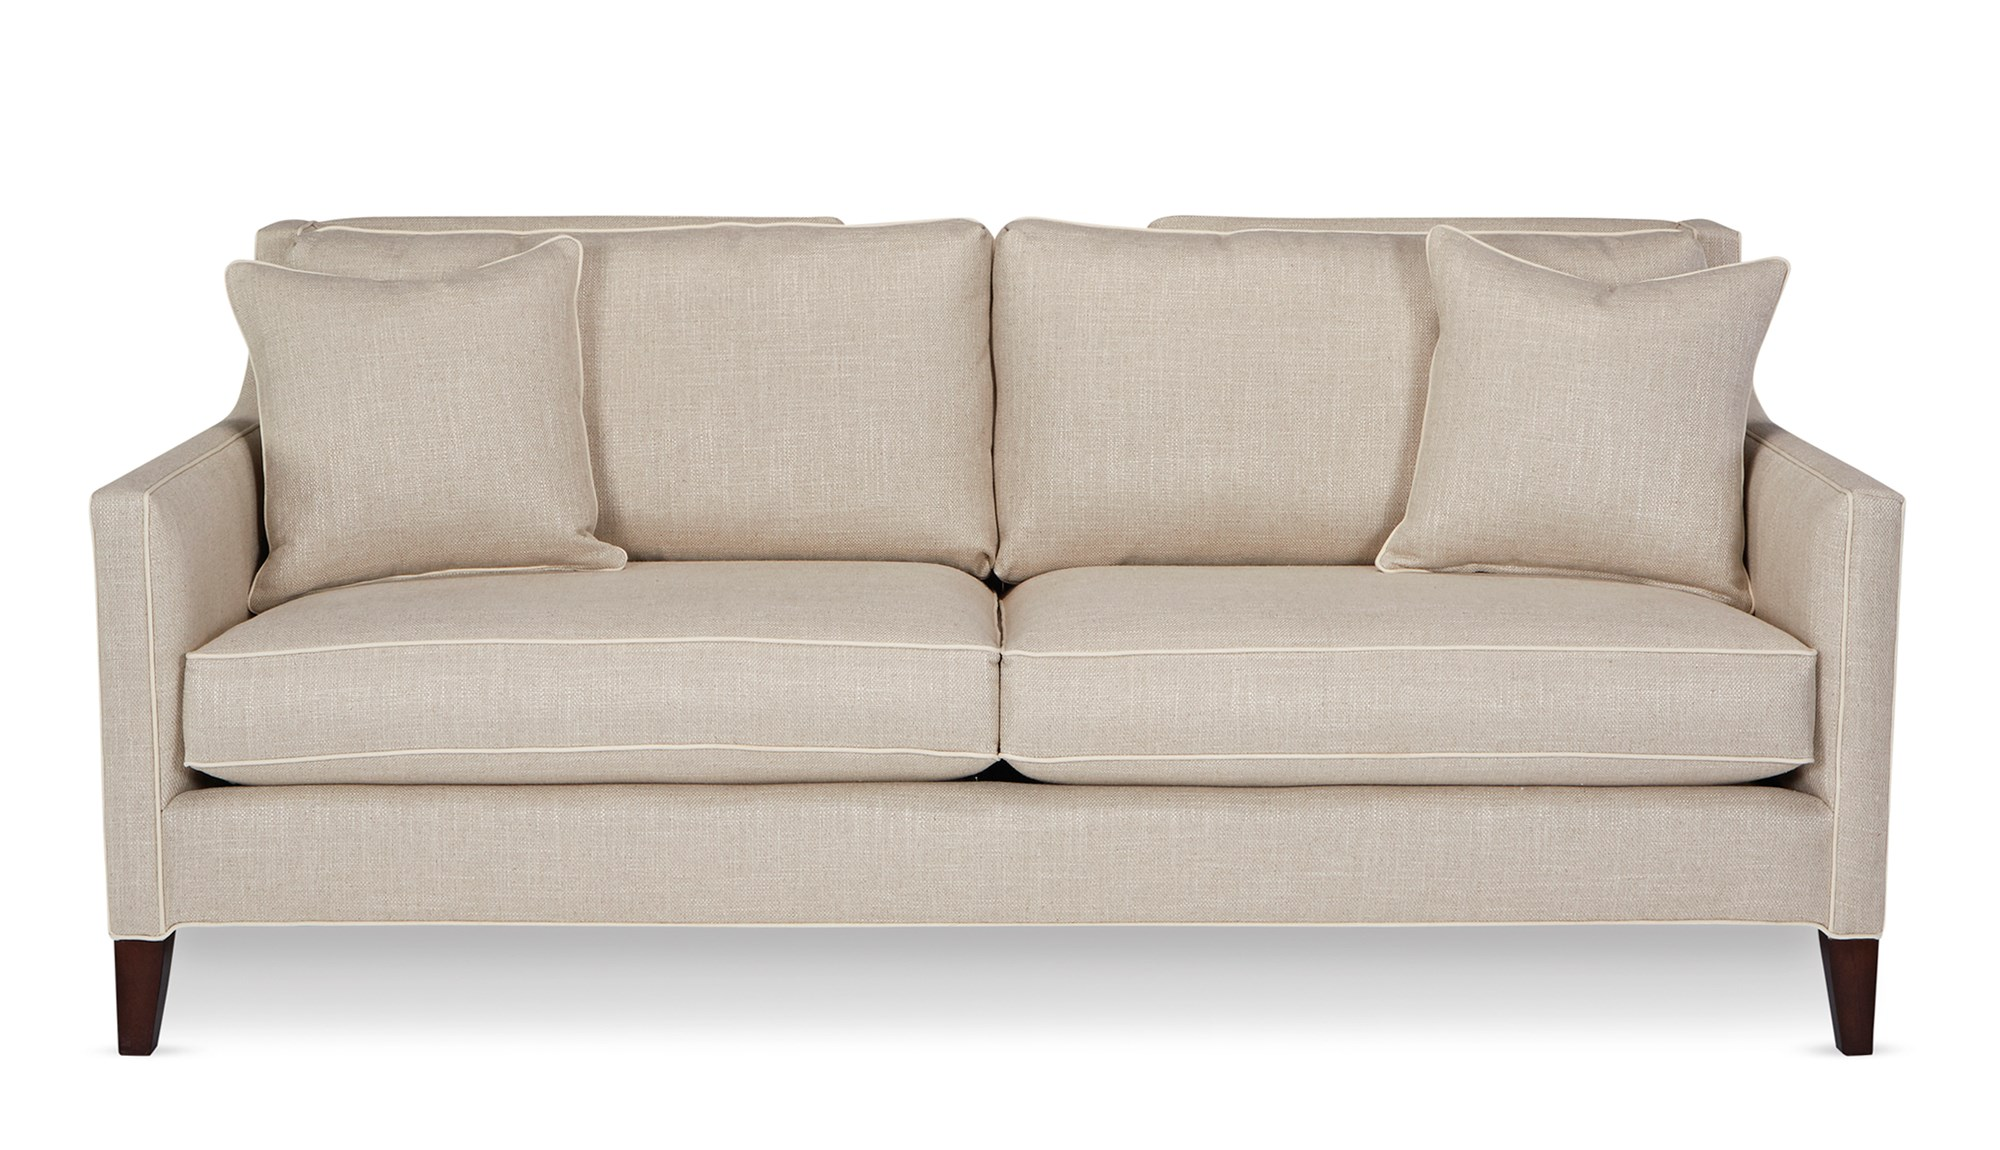 Del Mar Notched II Sofa Sofas & Loveseats Living Room